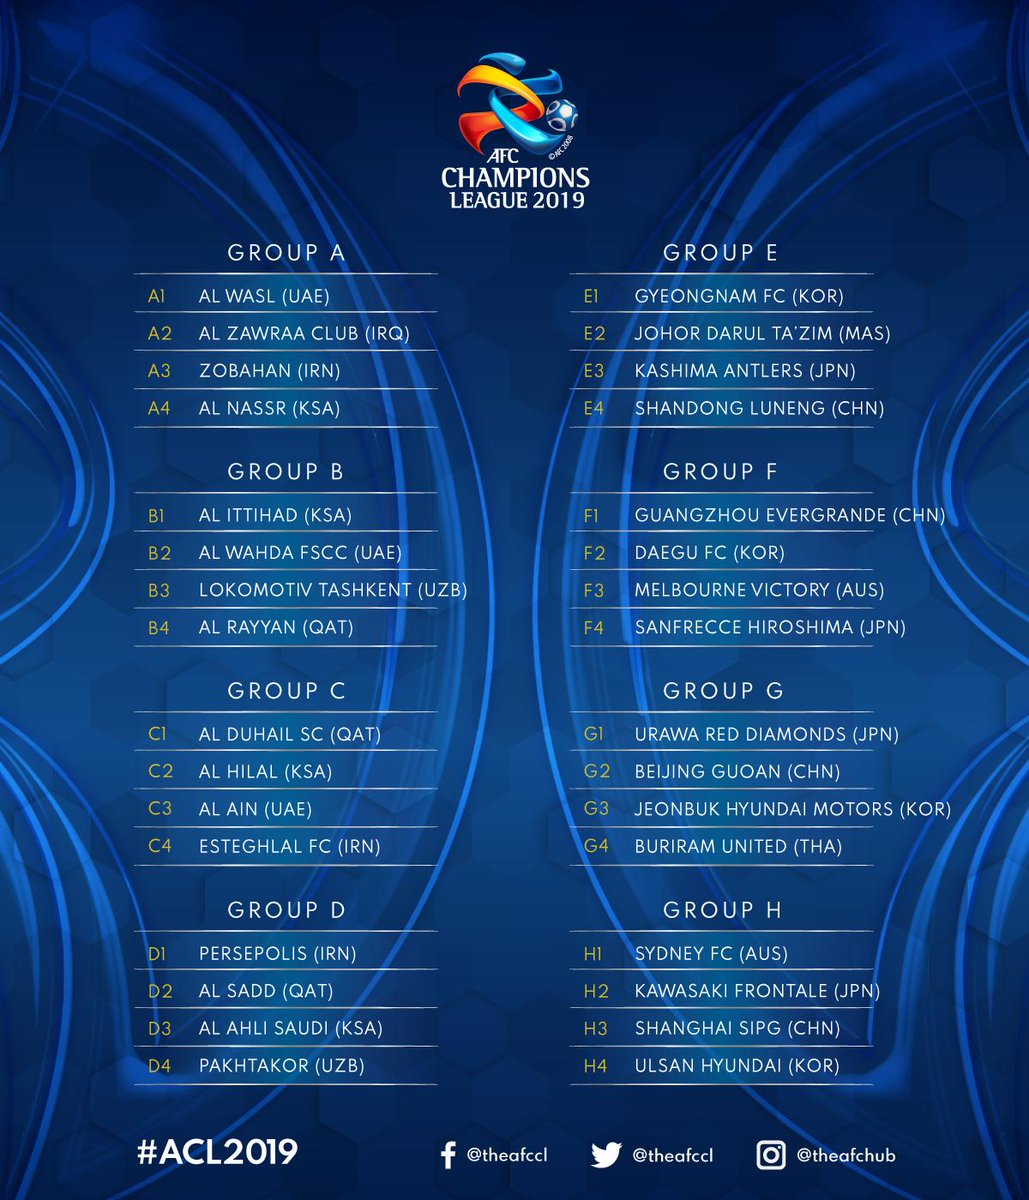 GegarJohor's photo on #acl2019